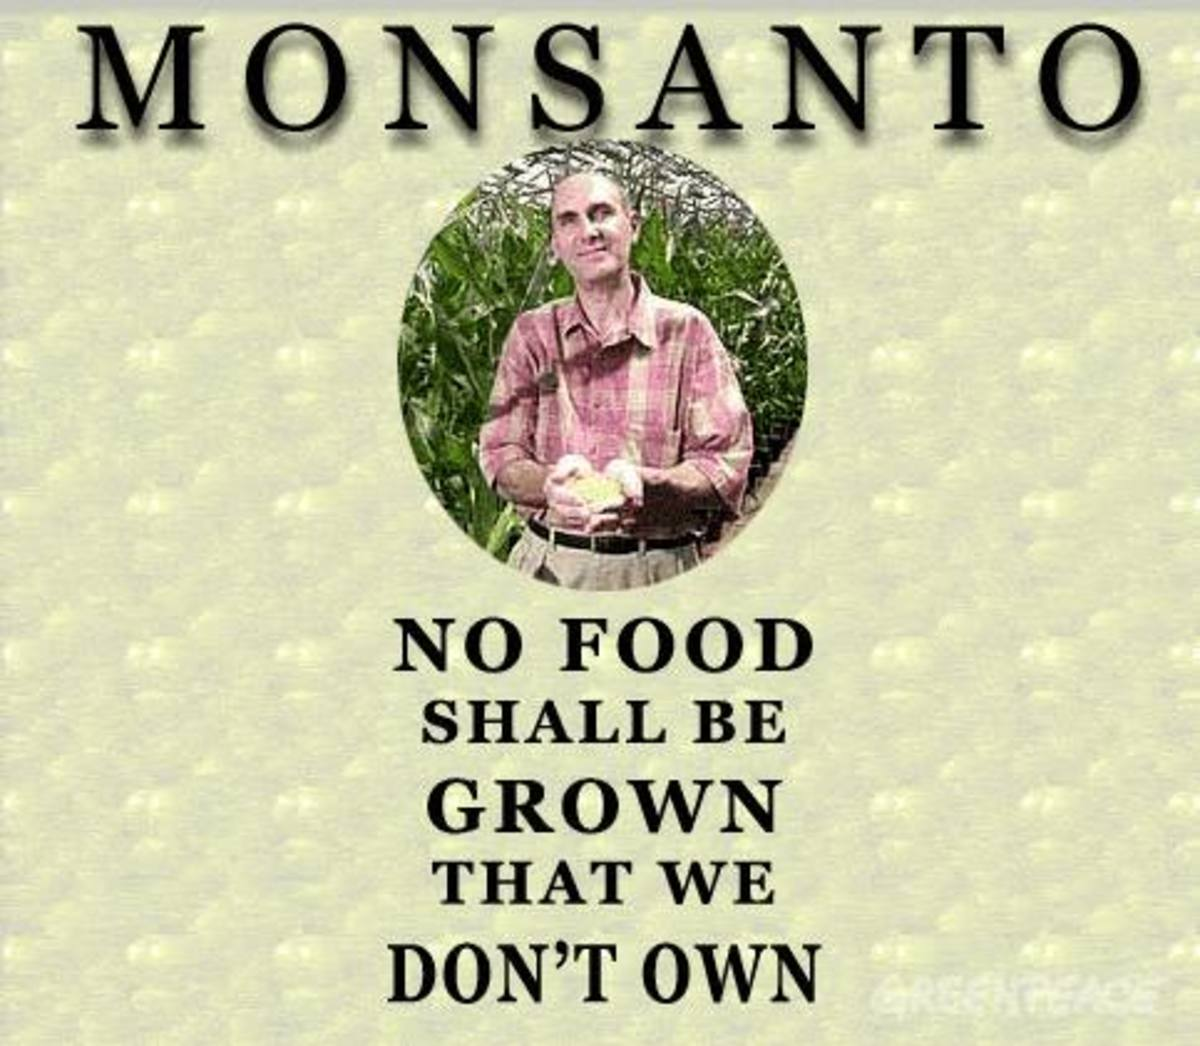 Monsanto: True to its creed and aim, worldwide